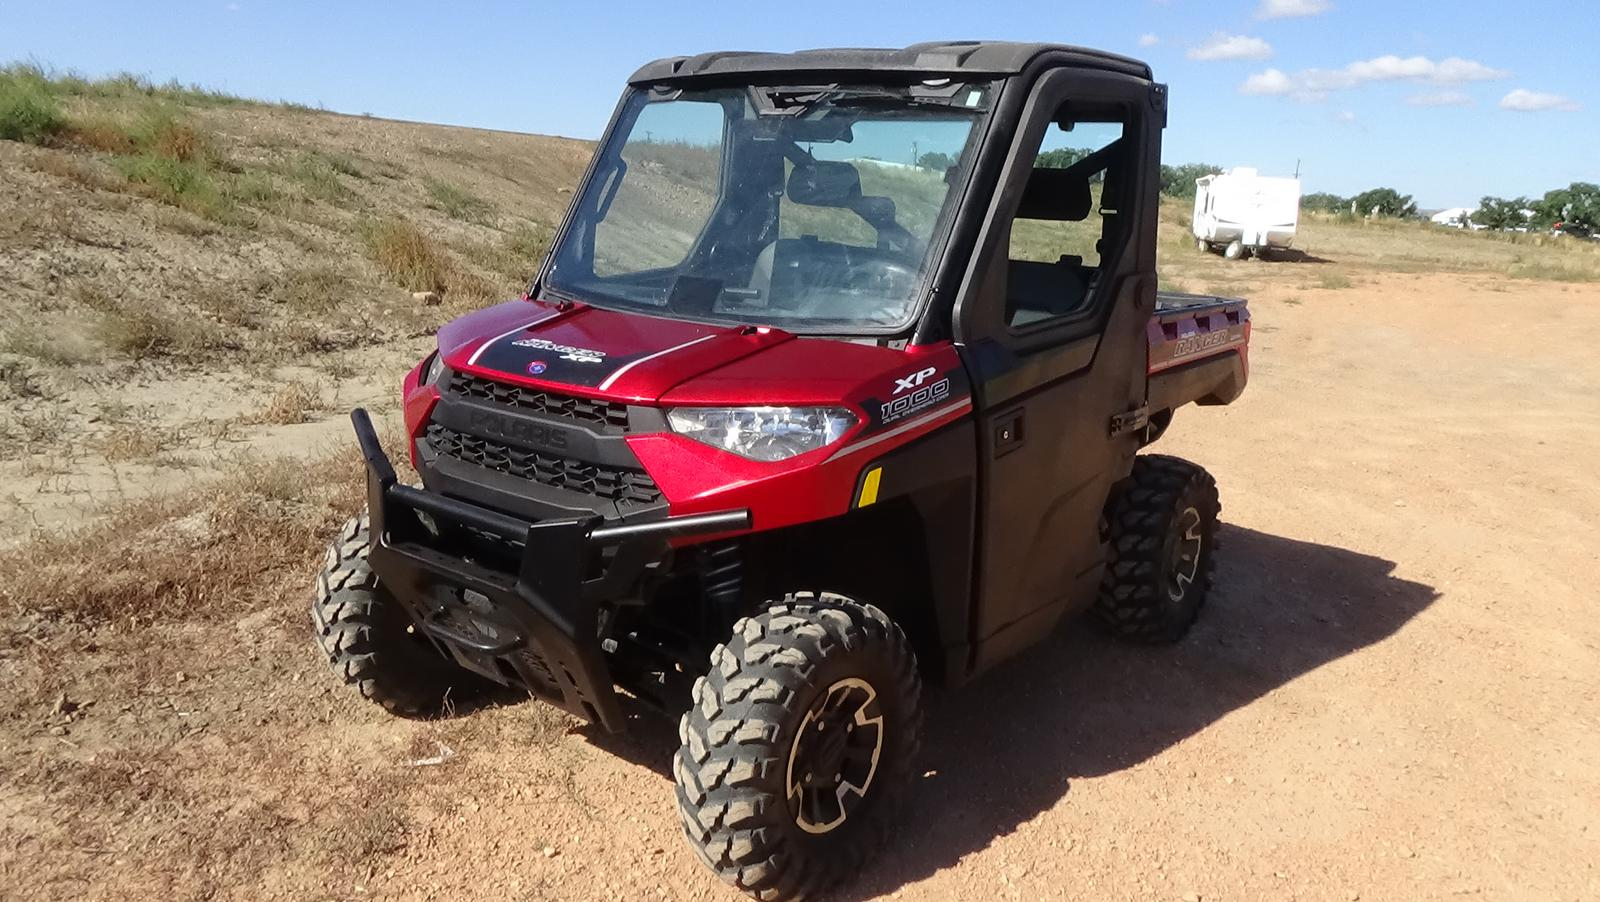 2018 polaris industries ranger xp 1000 eps - sunset red metallic